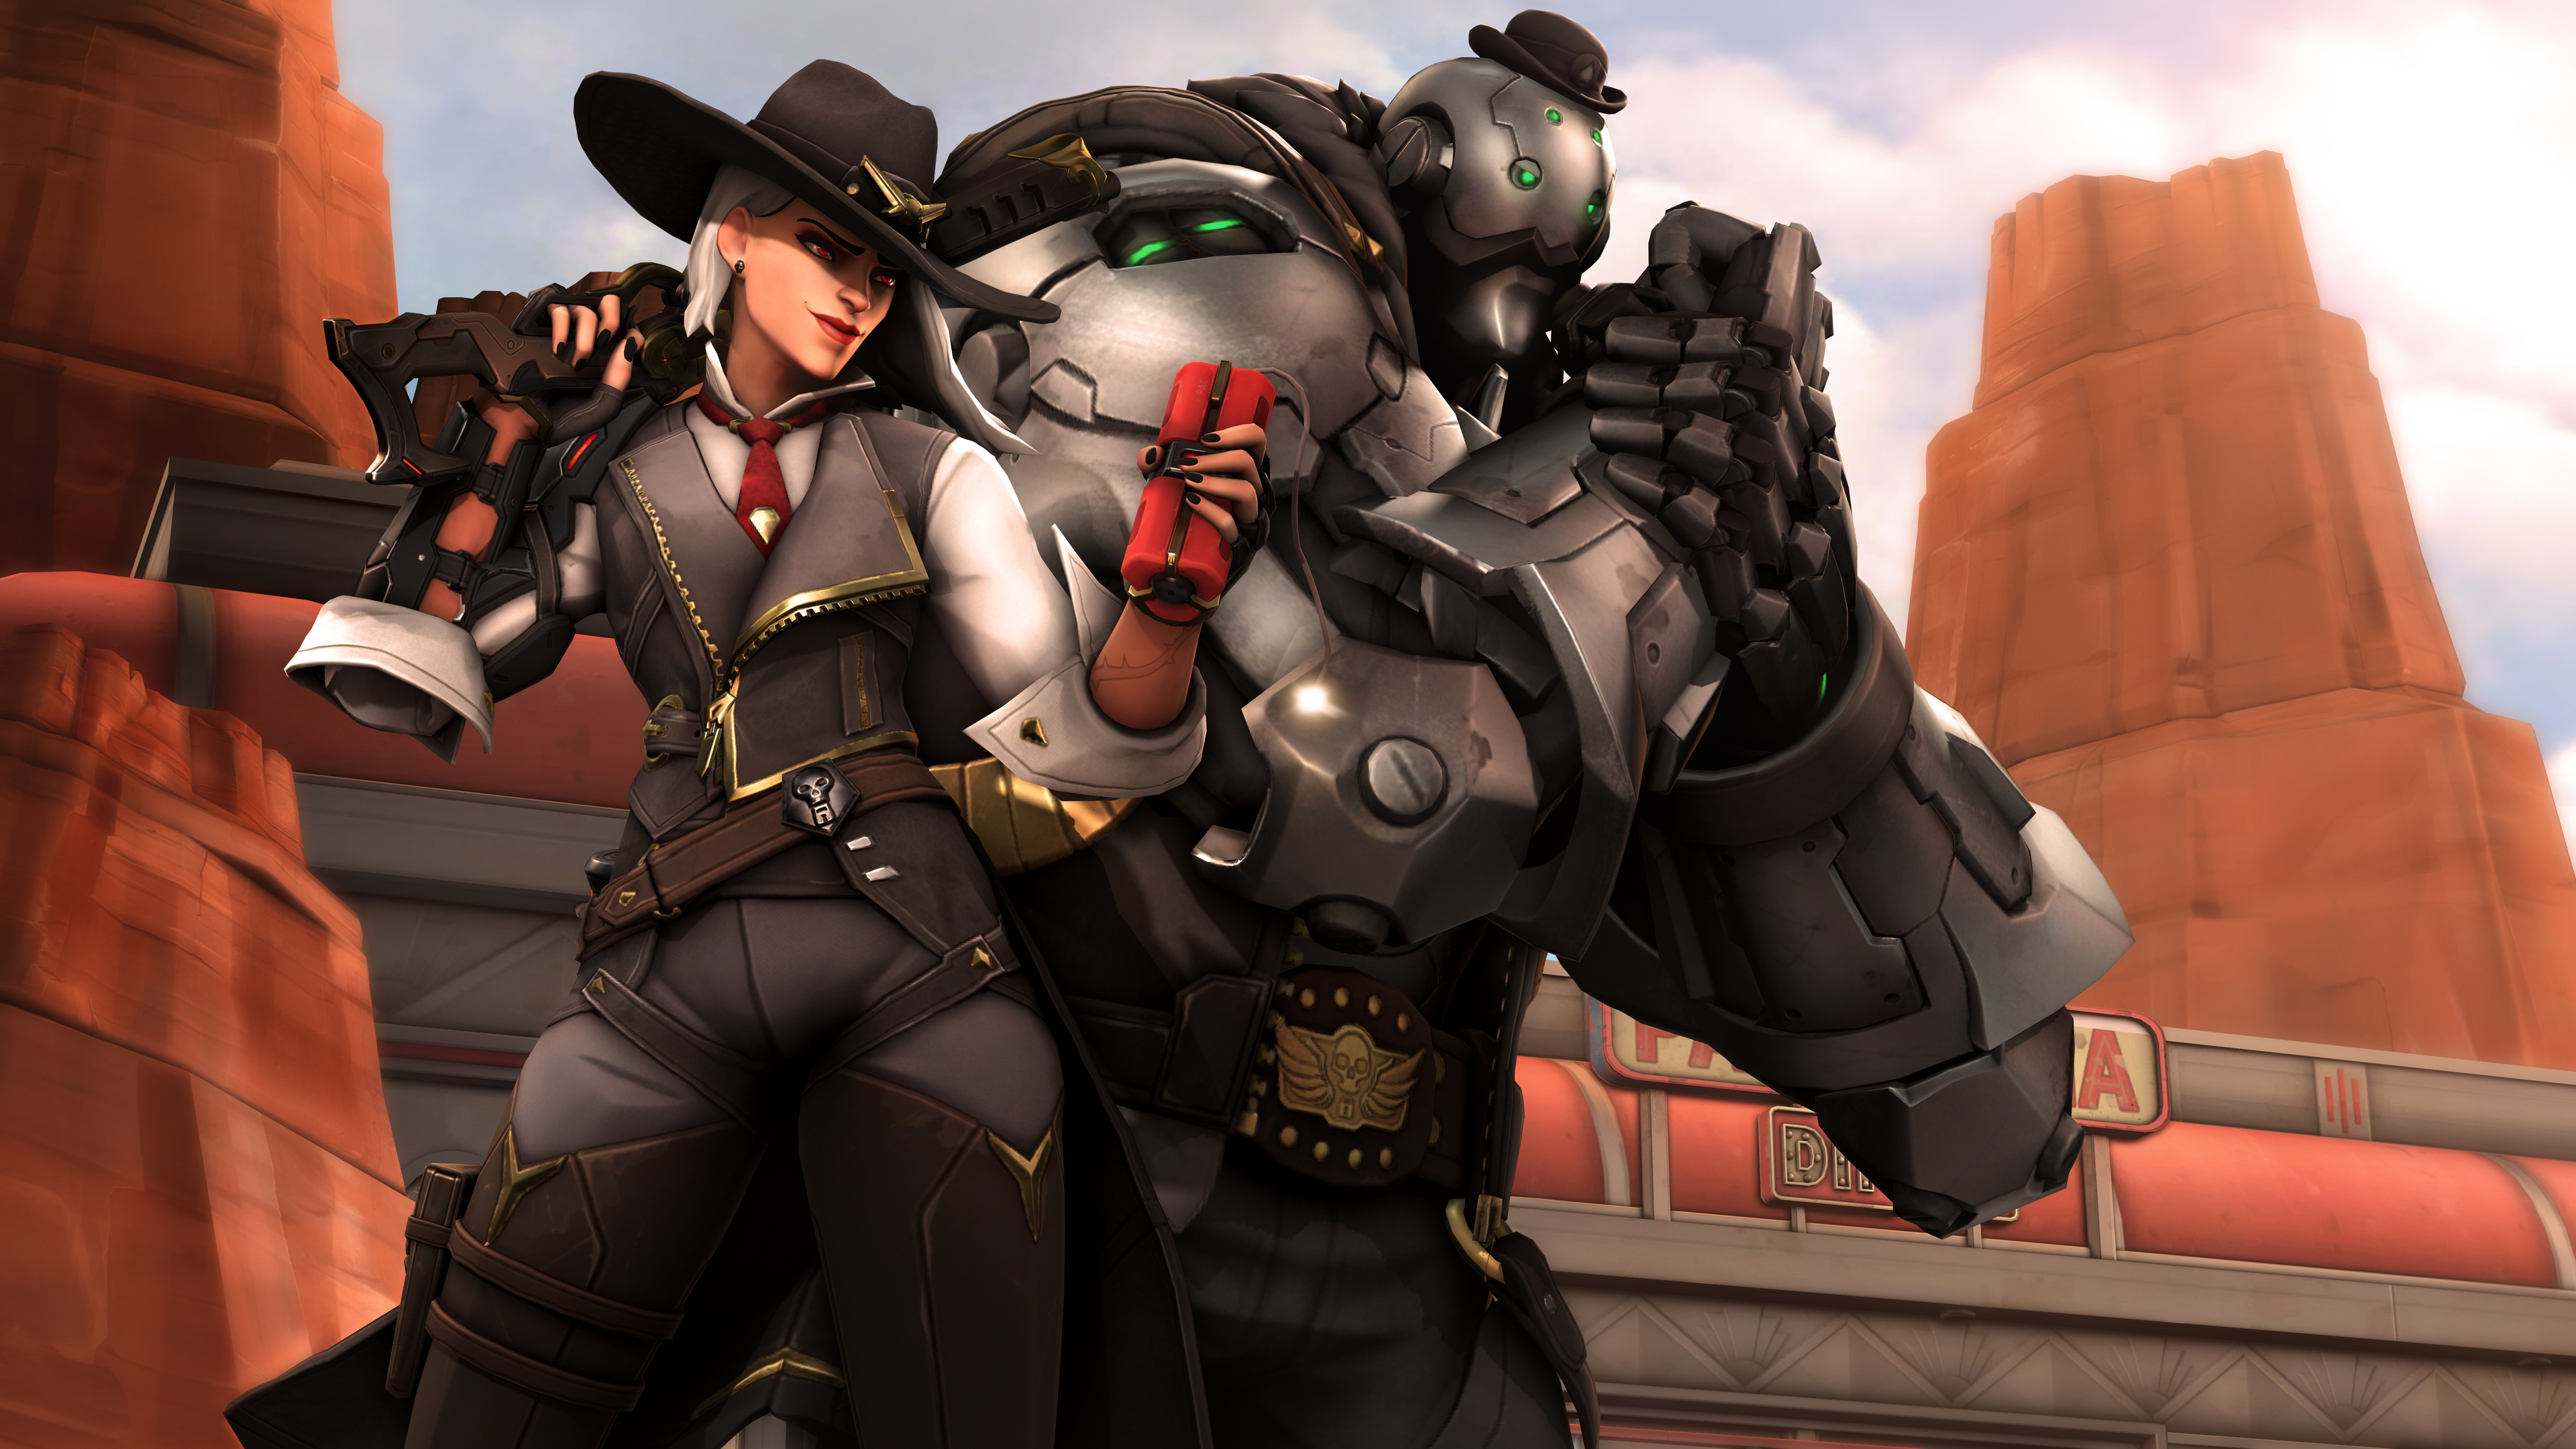 ashe and bob 1543621013 - Ashe And Bob - overwatch wallpapers, hd-wallpapers, games wallpapers, deviantart wallpapers, ashe overwatch wallpapers, 4k-wallpapers